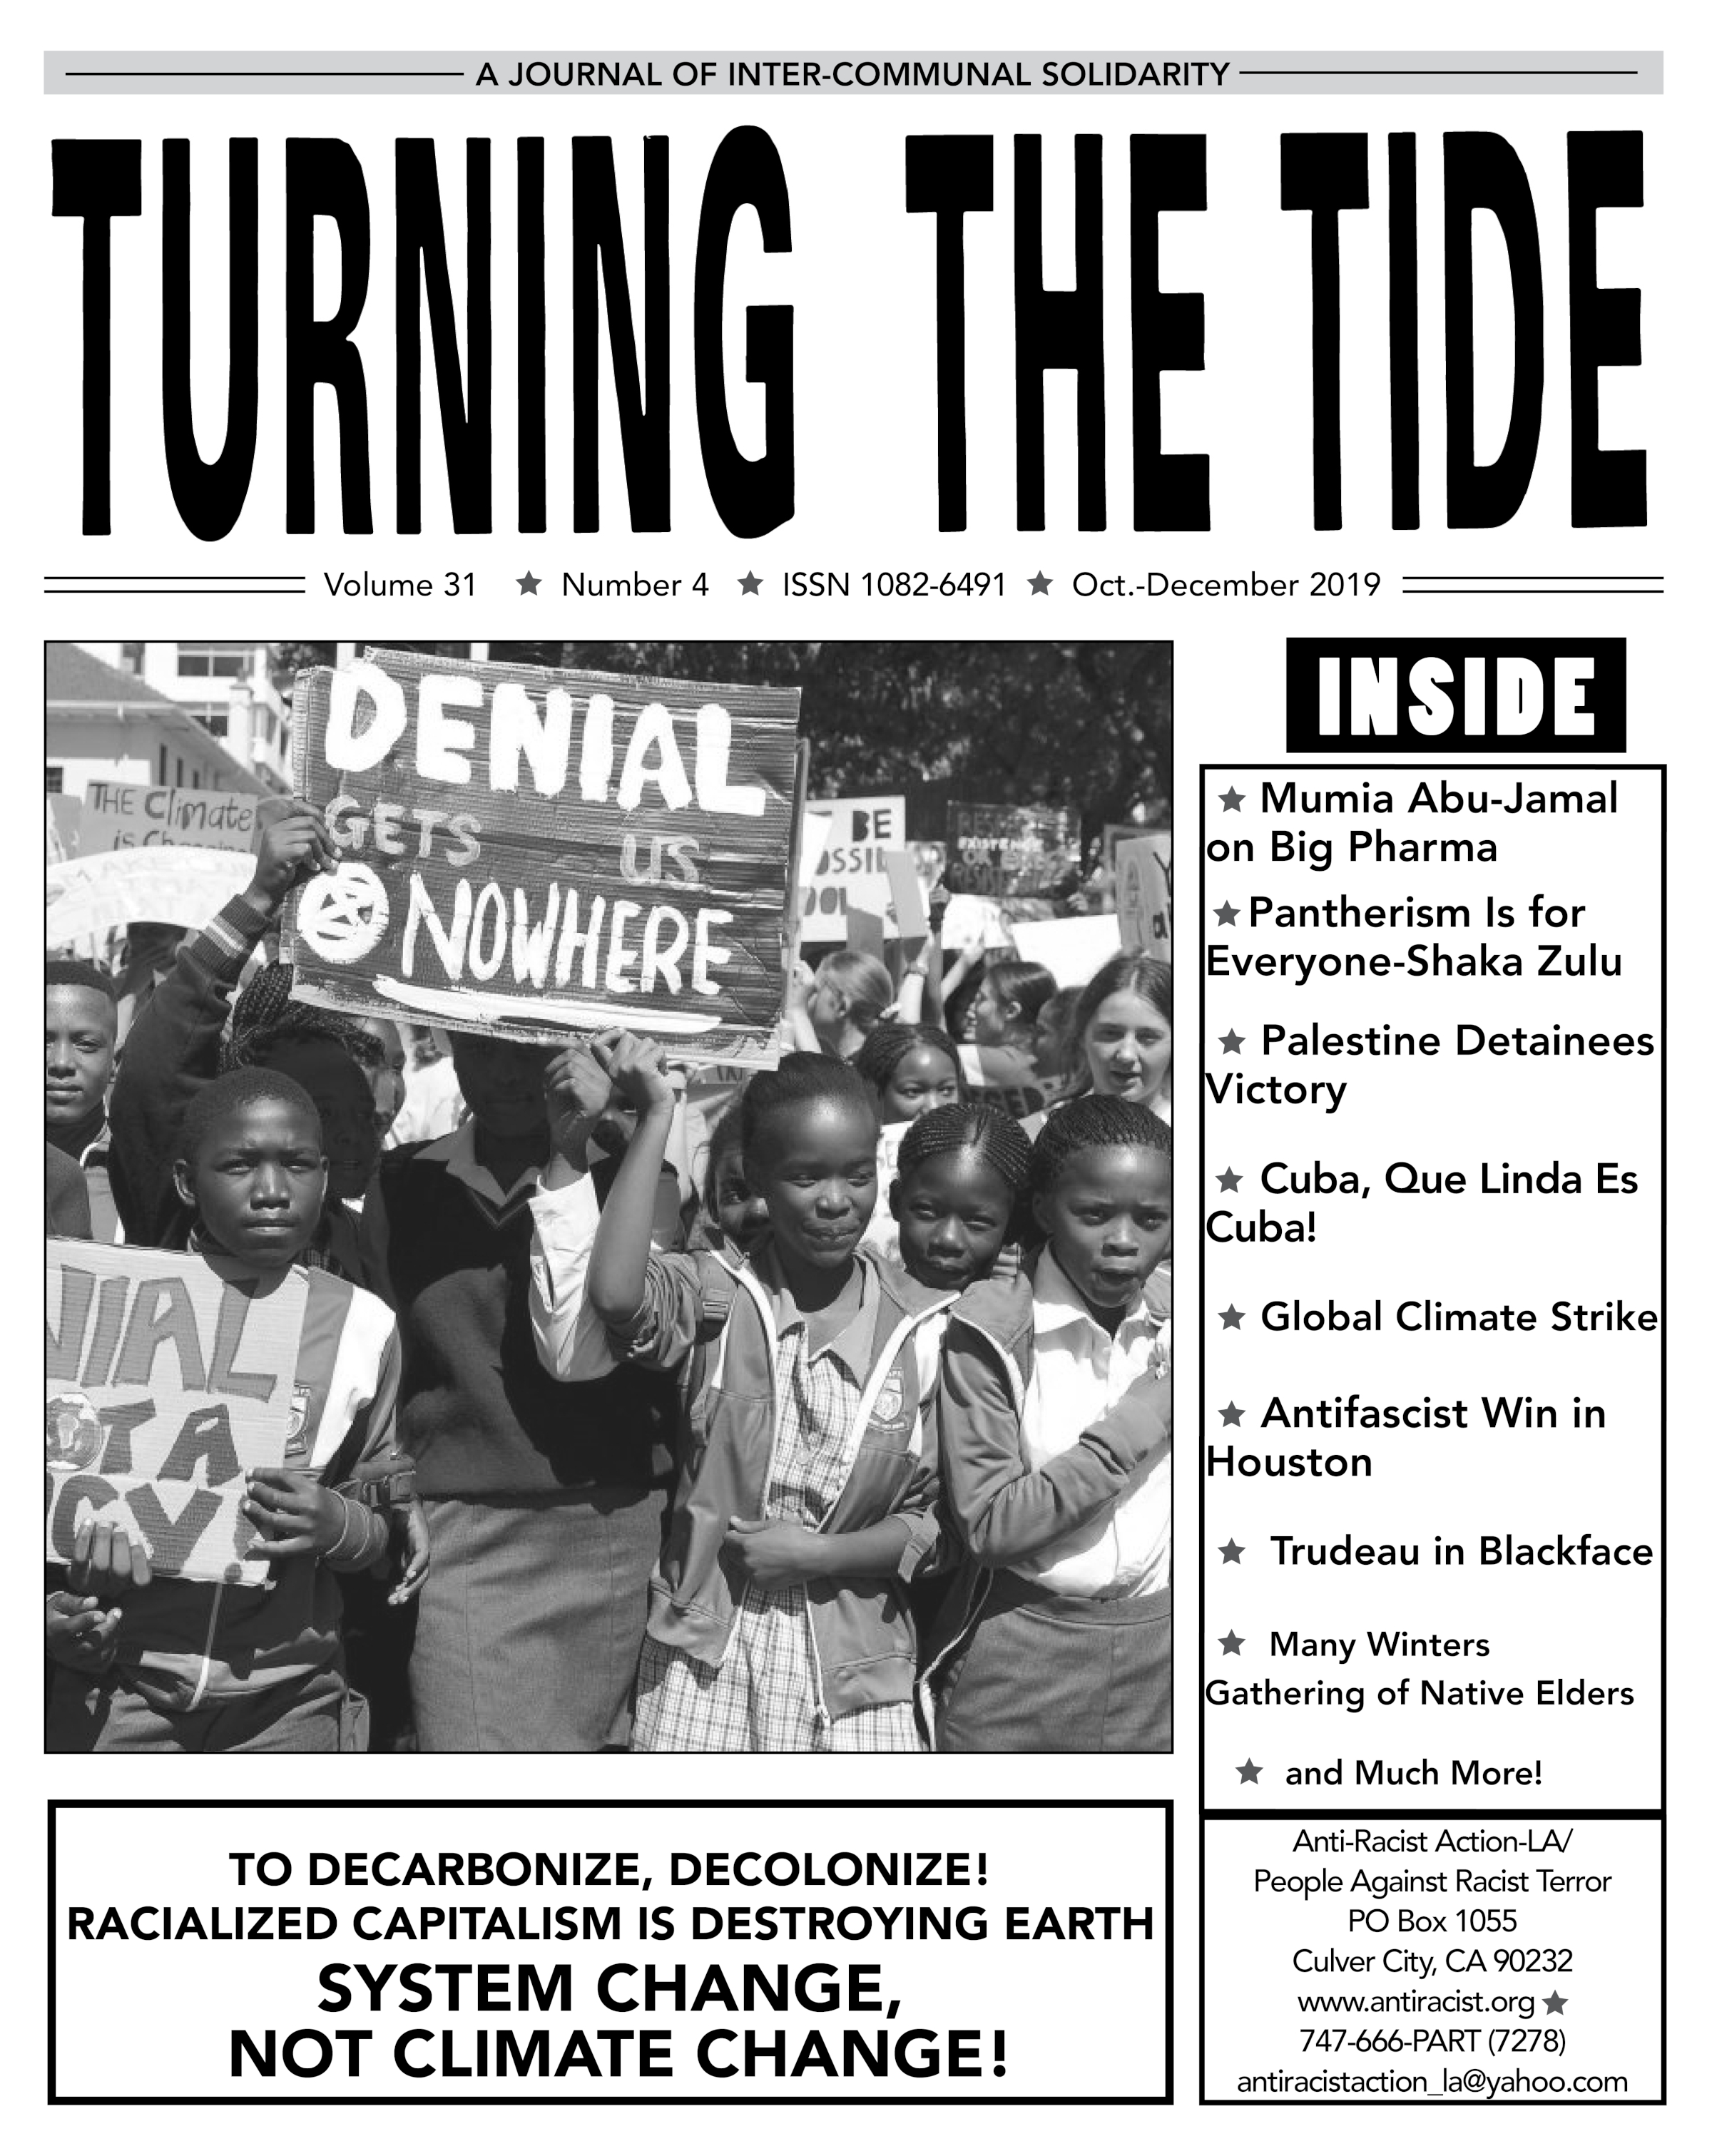 Turning The Tide, Vol. 31 #4, Oct-Dec 2019